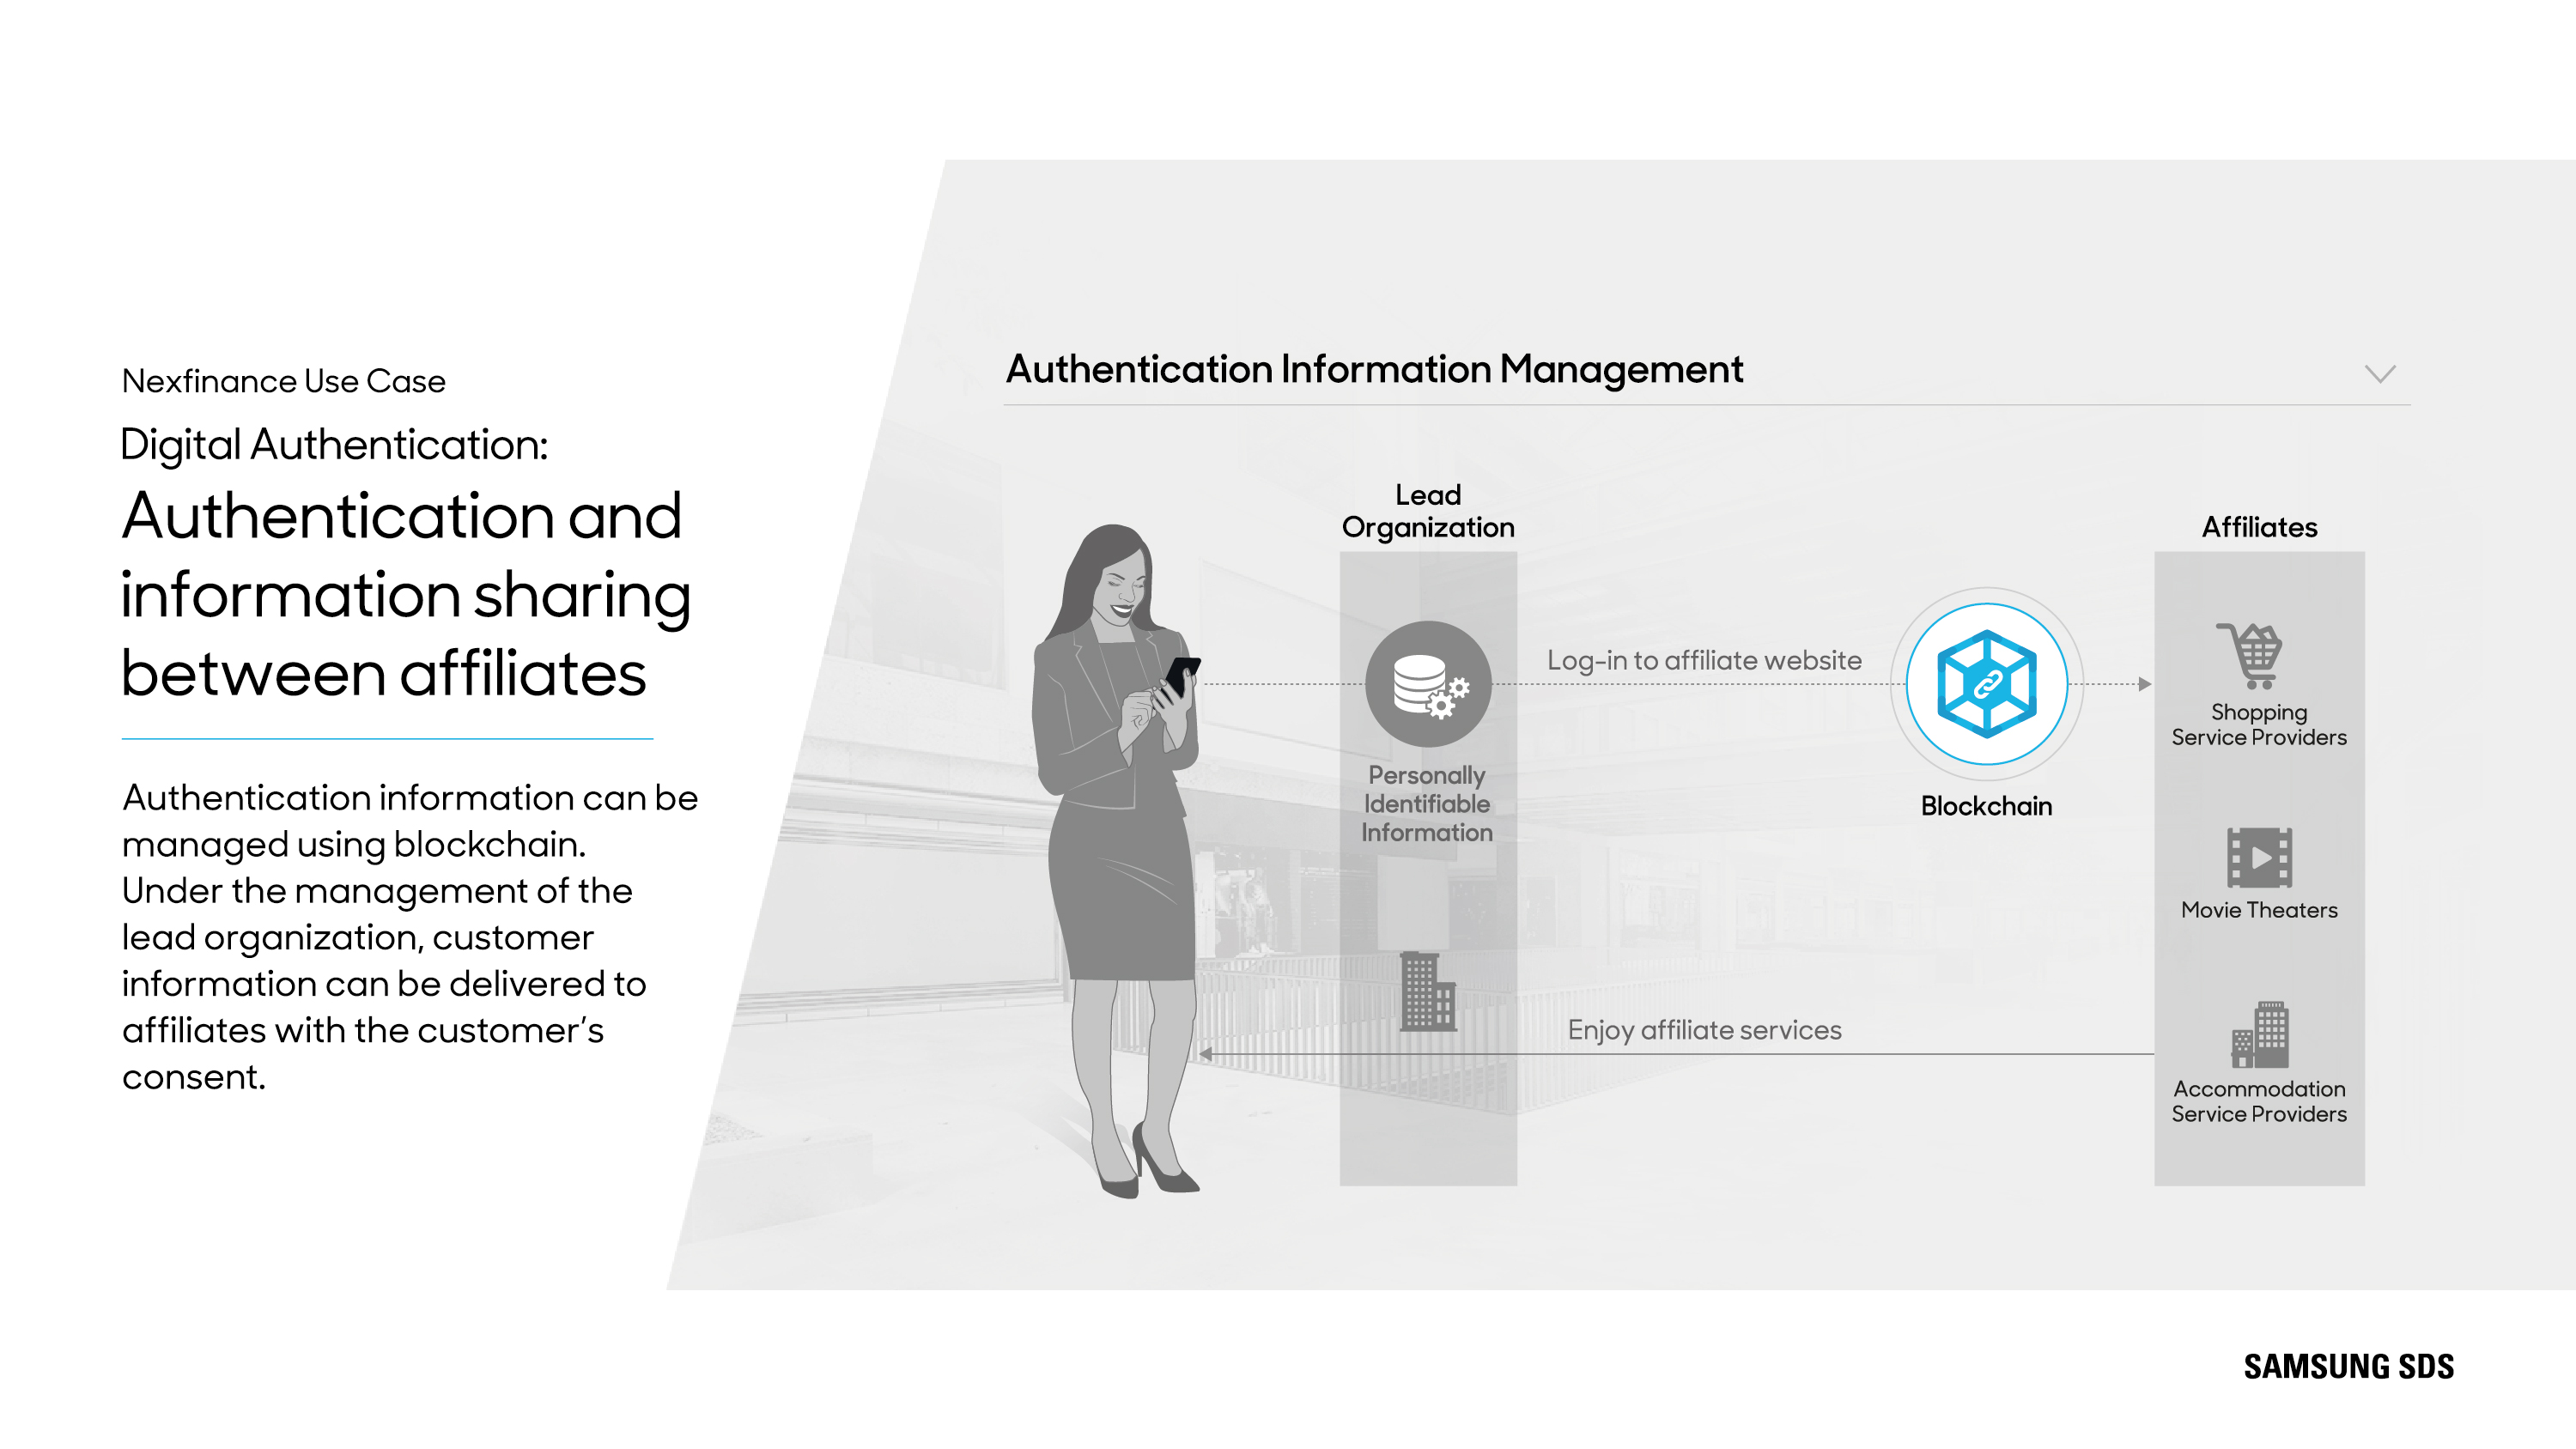 Digital Authentication: Authentication and information sharing between affiliates   Authentication information can be managed using blockchain. Under the management of the lead organization, customer information can be delivered to affiliates with the customer's consent.